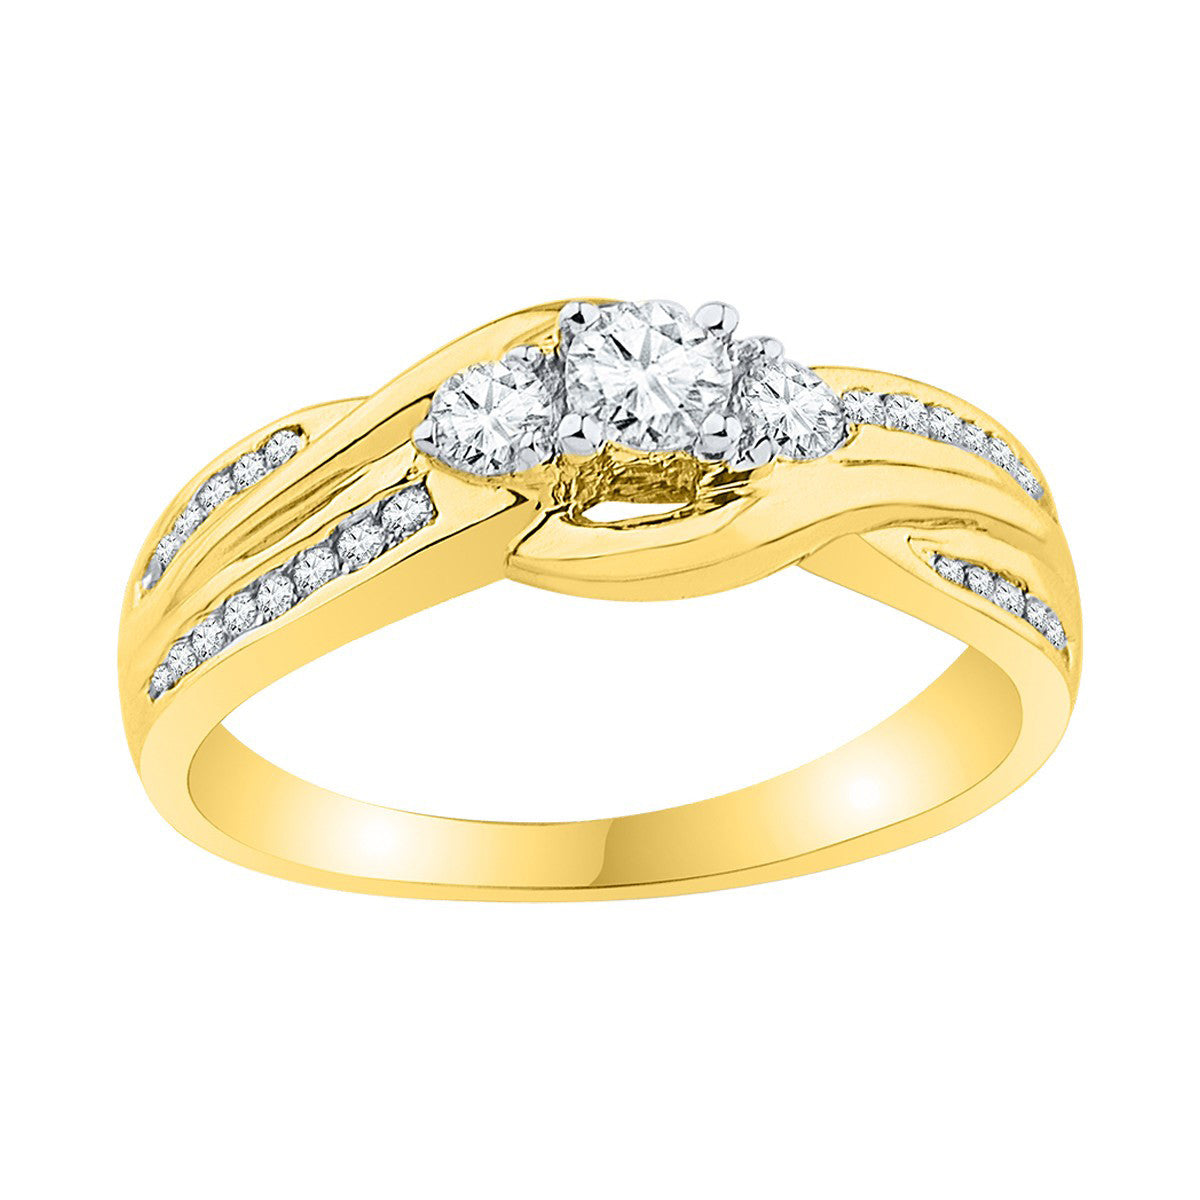 10k Yellow Gold Womens Round 3-stone Diamond Bridal Wedding Engagement Ring 1/2 Cttw 108824 - shirin-diamonds